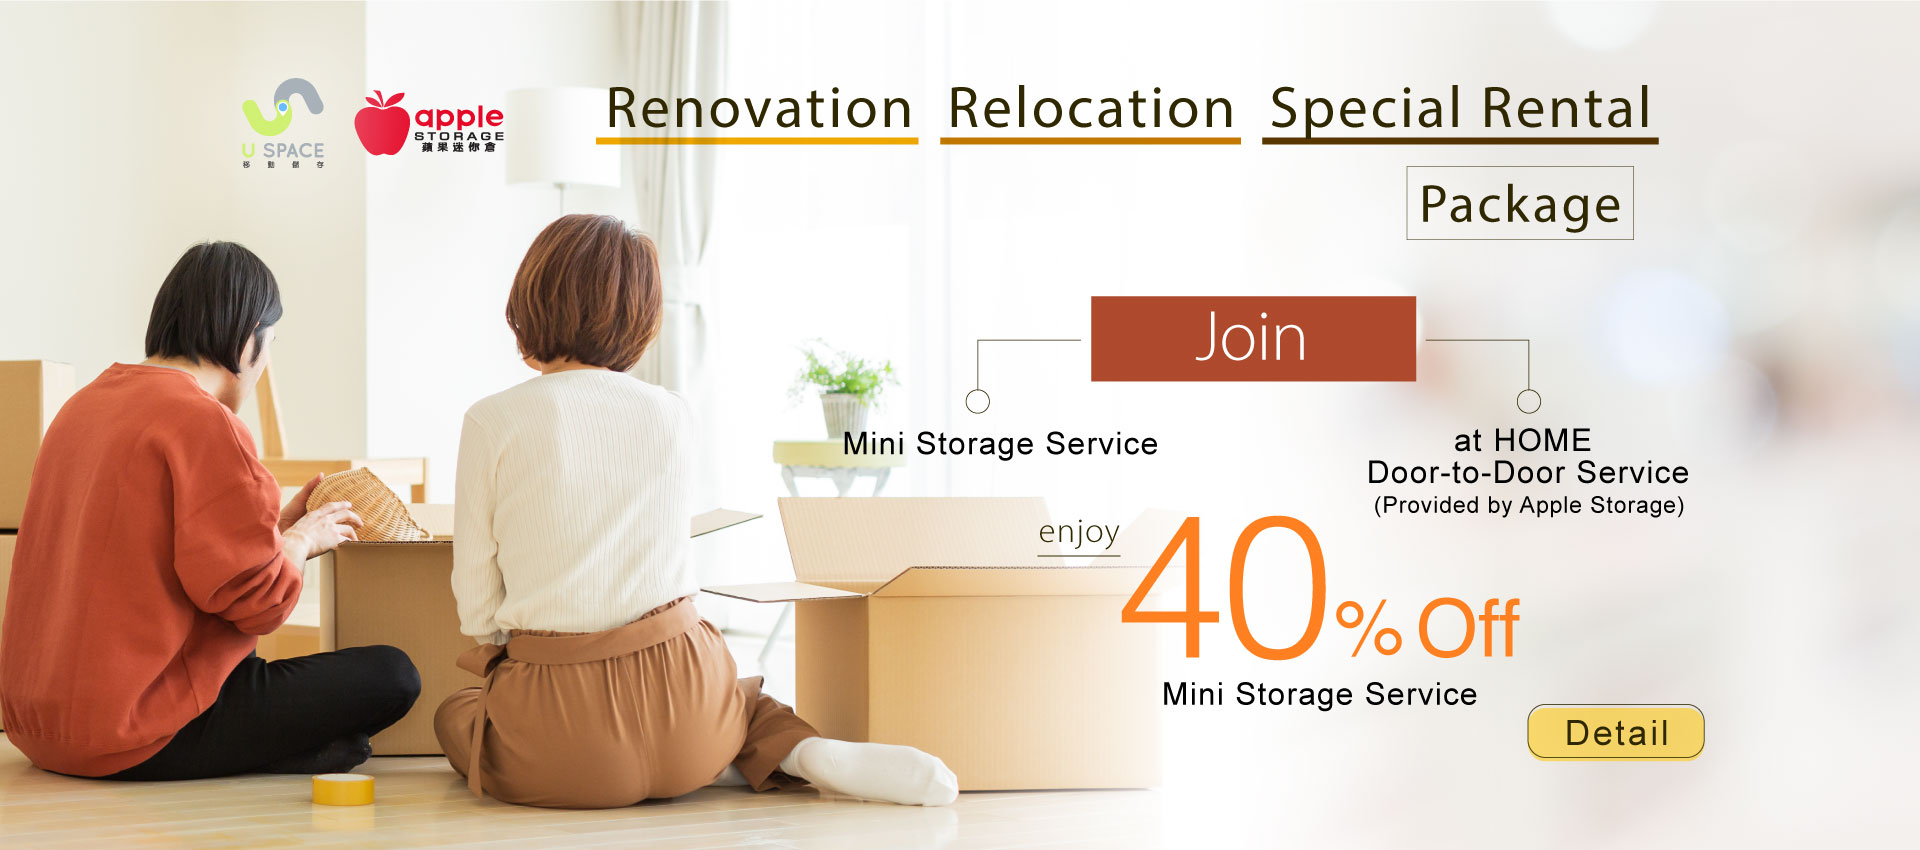 Renovation/Relocation Special Rental Package